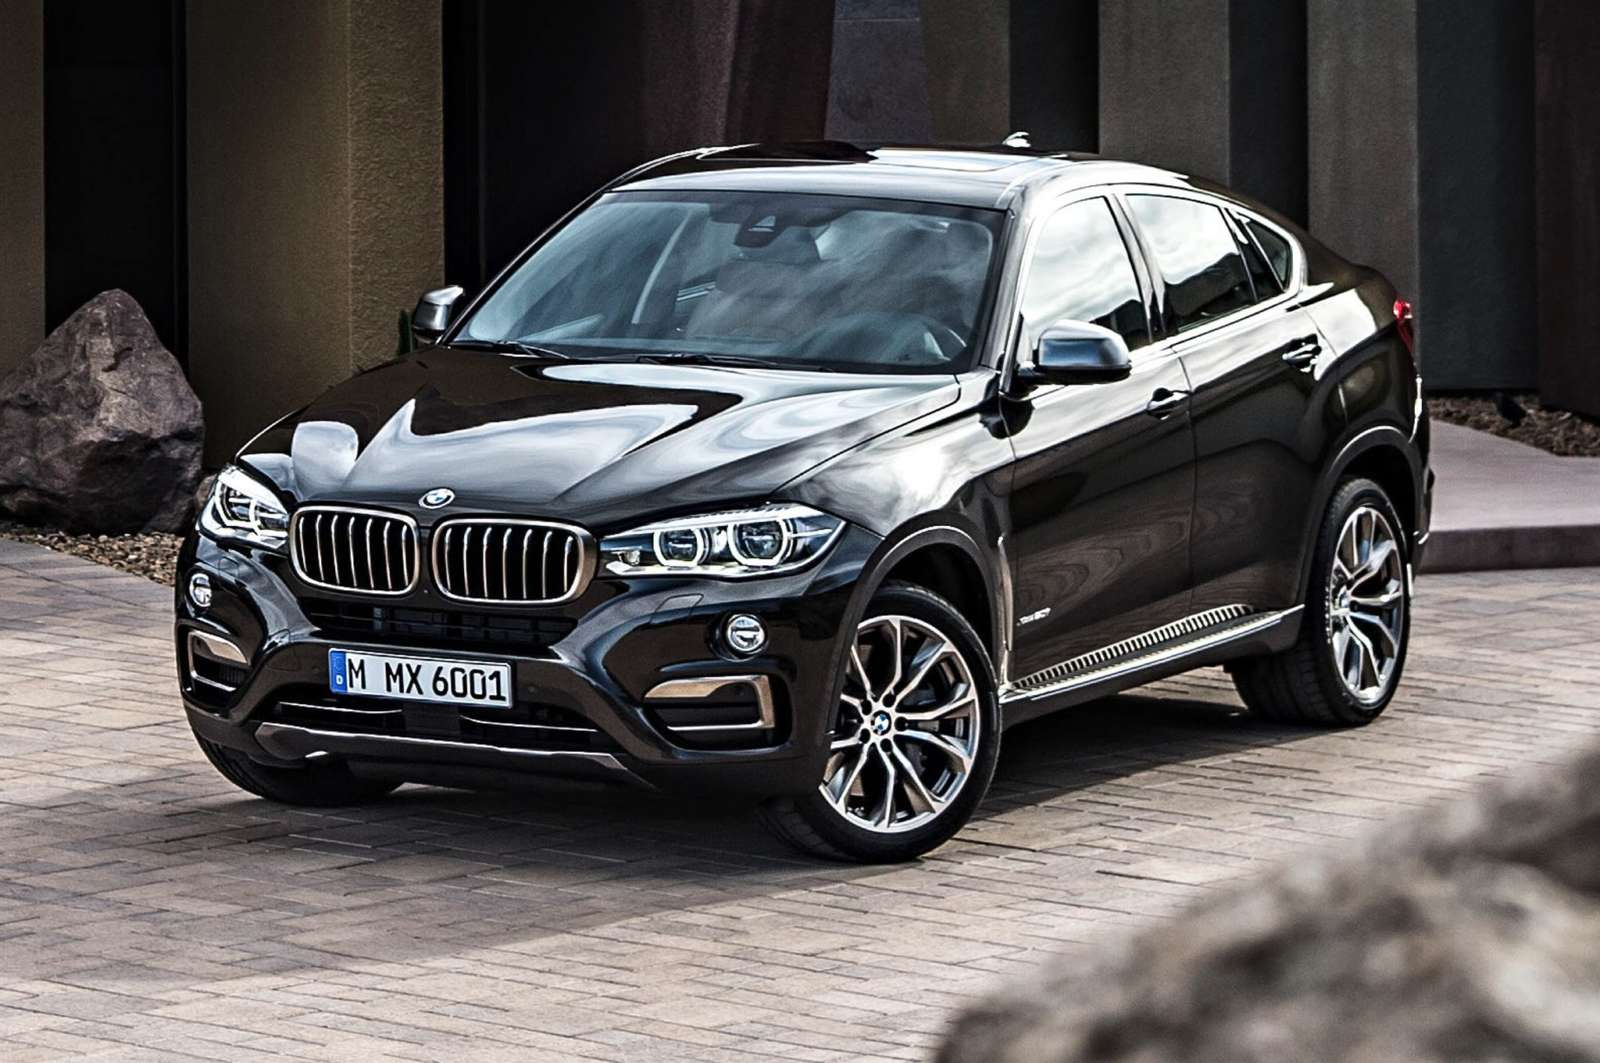 All New Bmw X6 To Launch In India On 23 July Motoroids